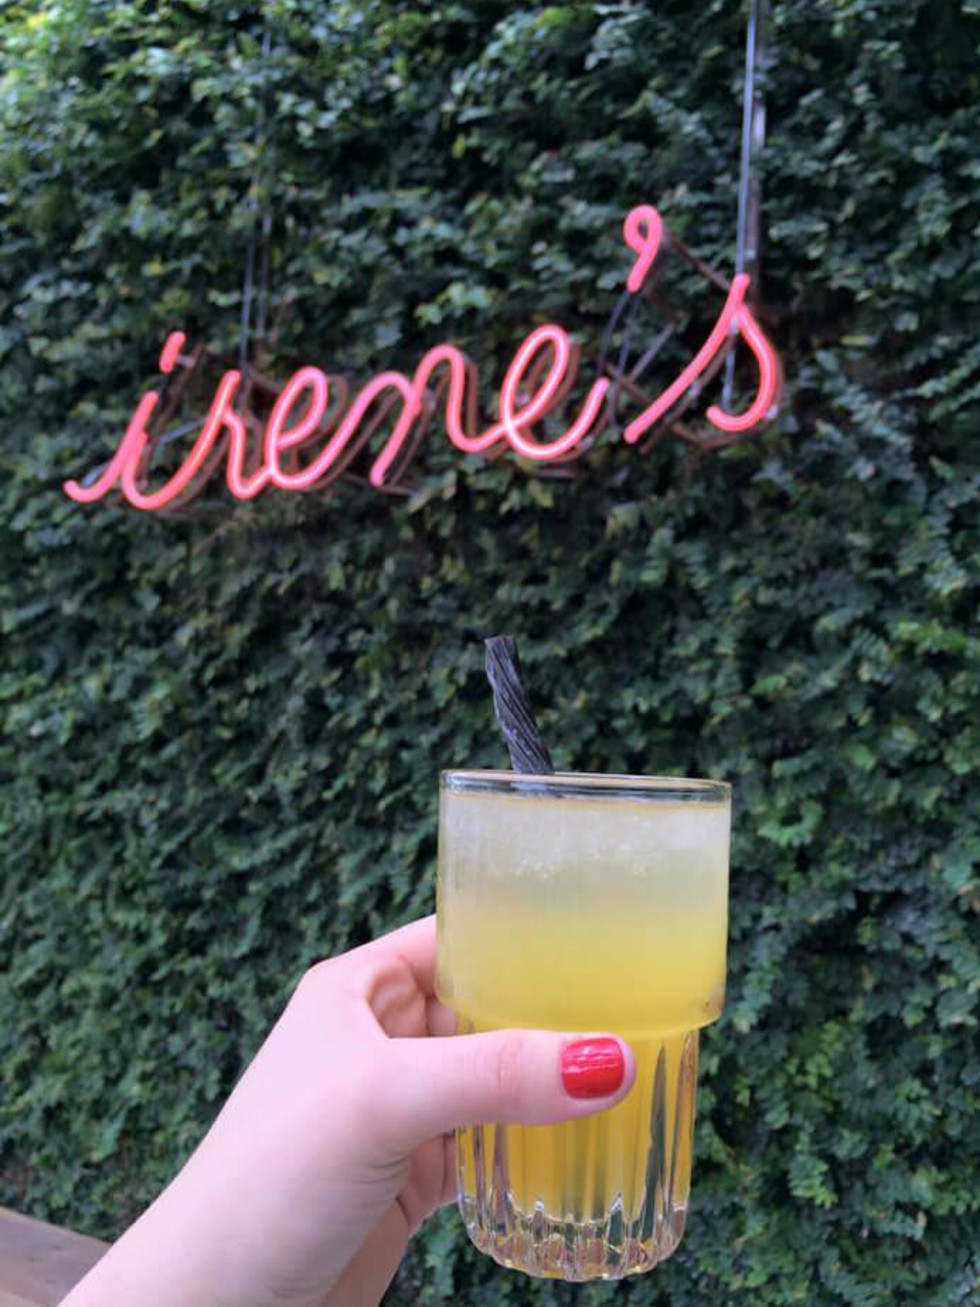 Irene's restaurant downtown Austin sign cocktail drink licorice